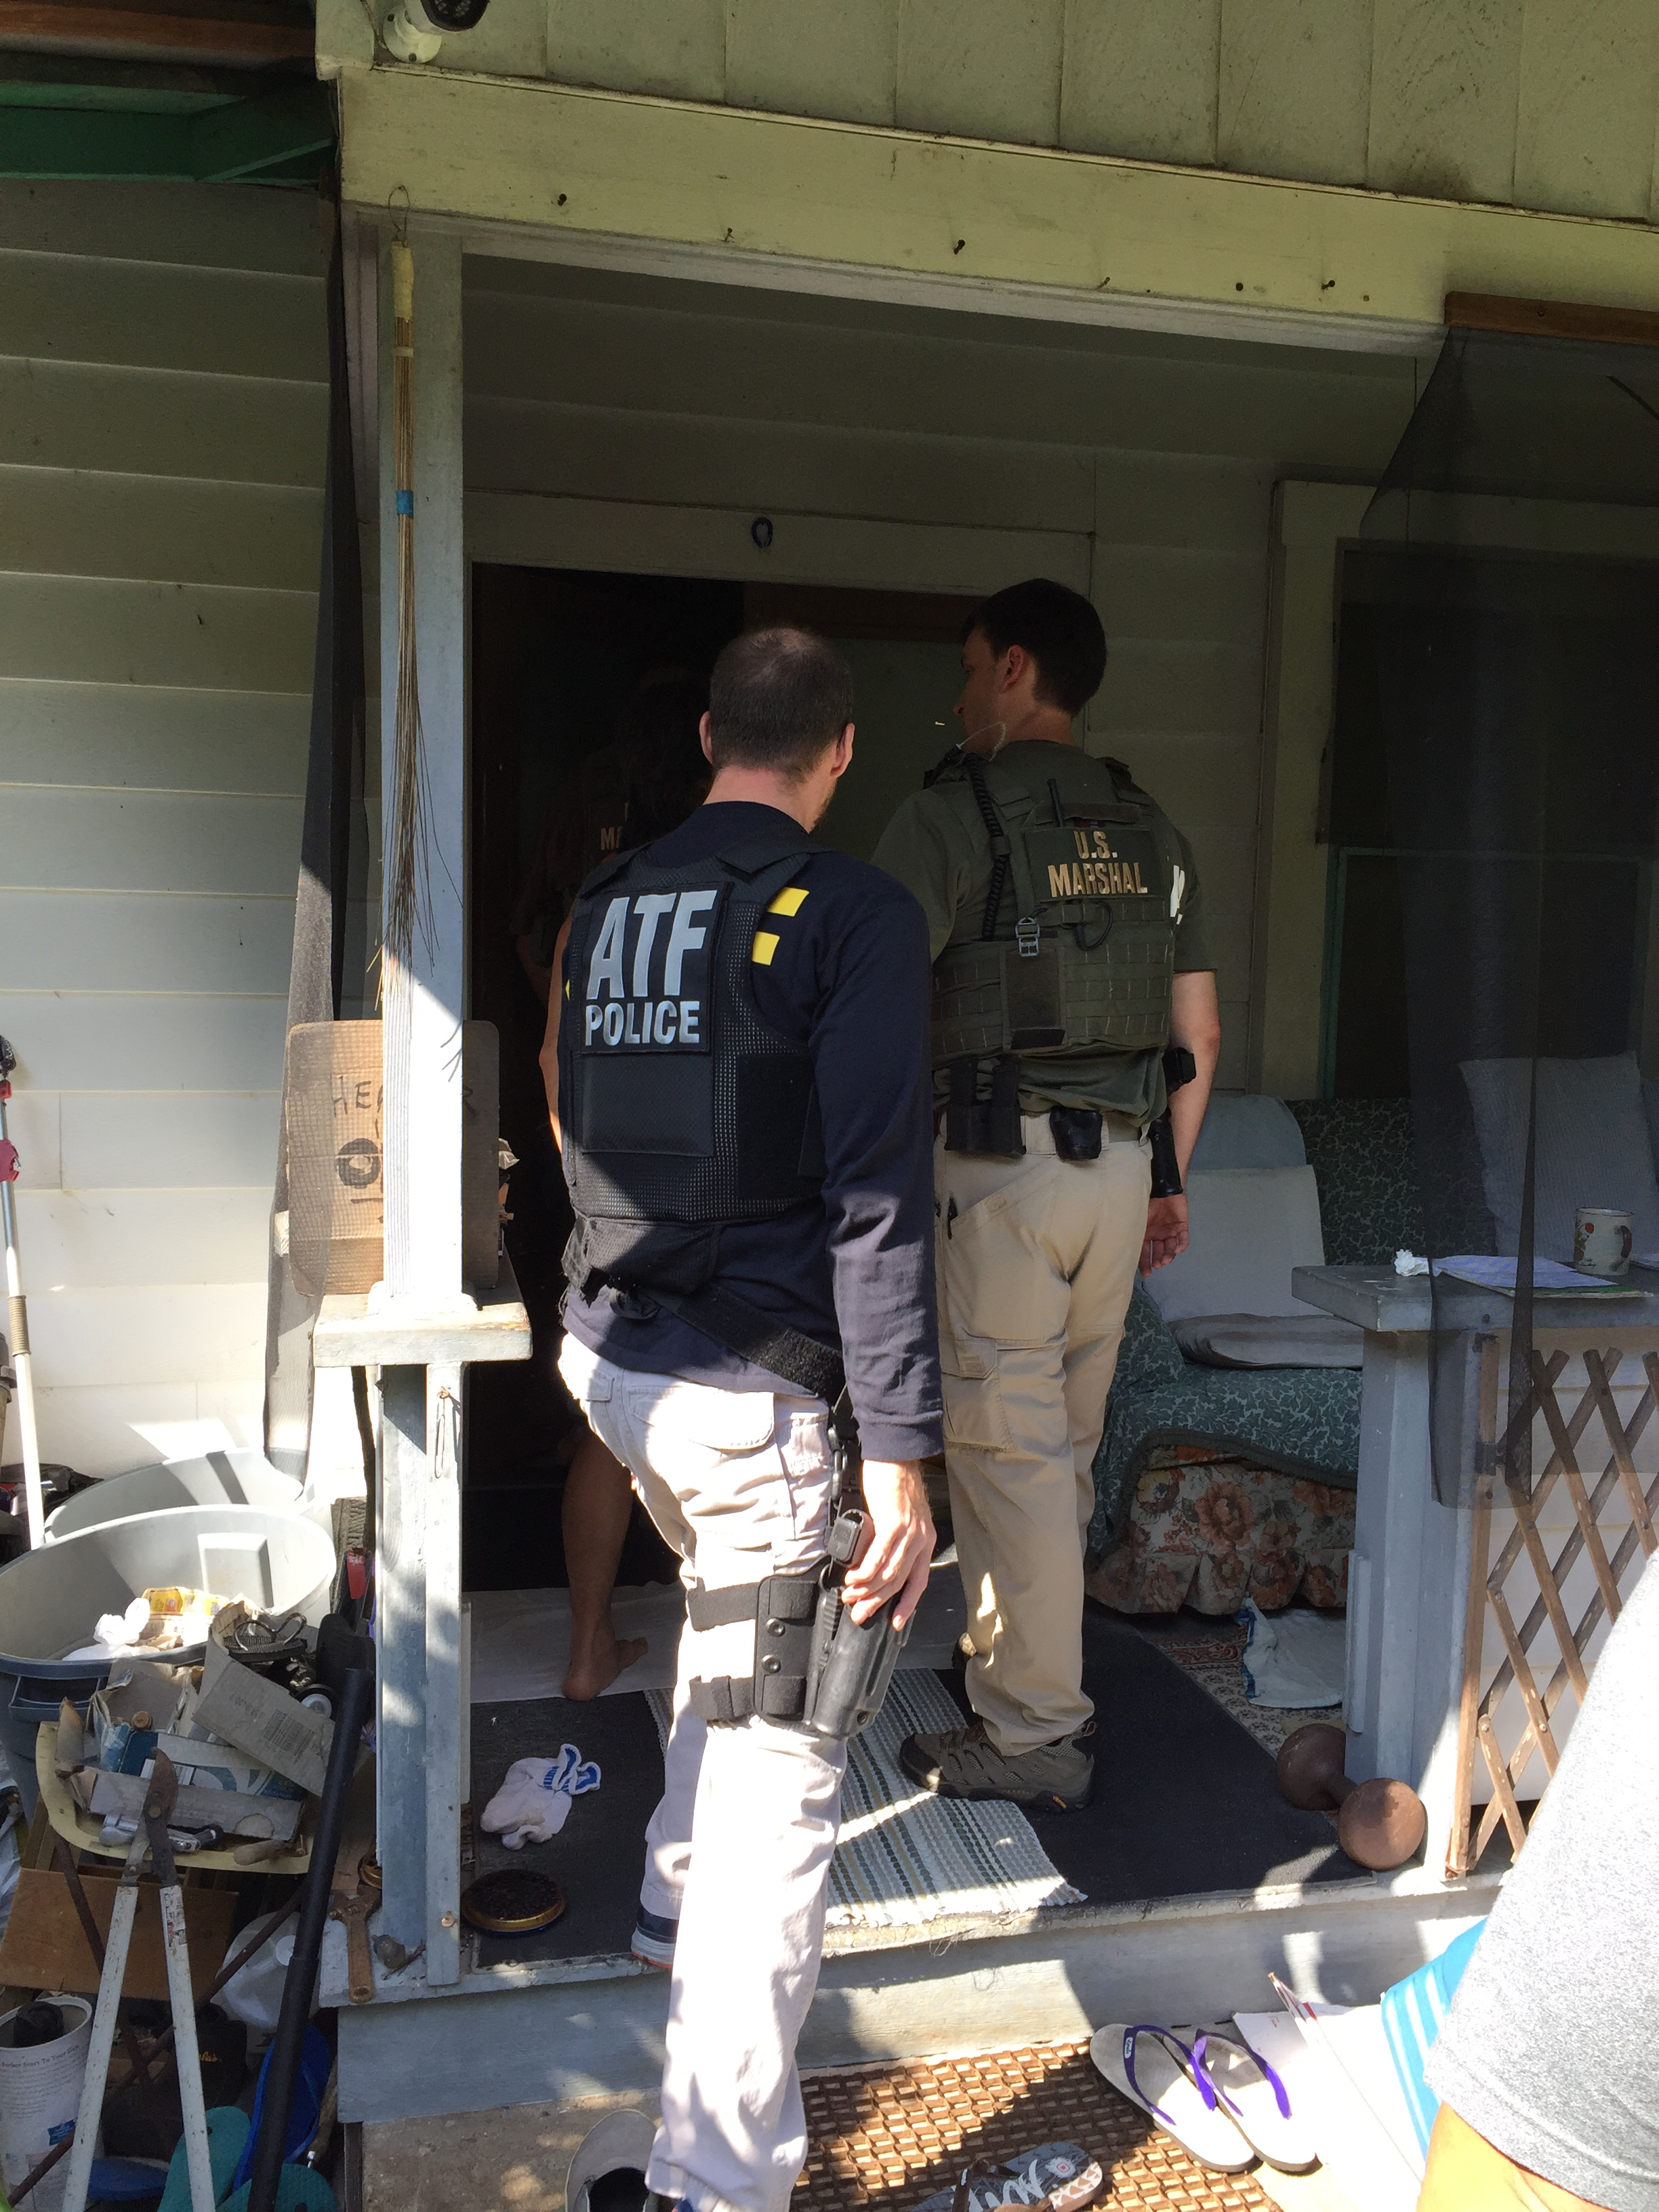 Photo credit: US Marshals Service/Department of Justice.